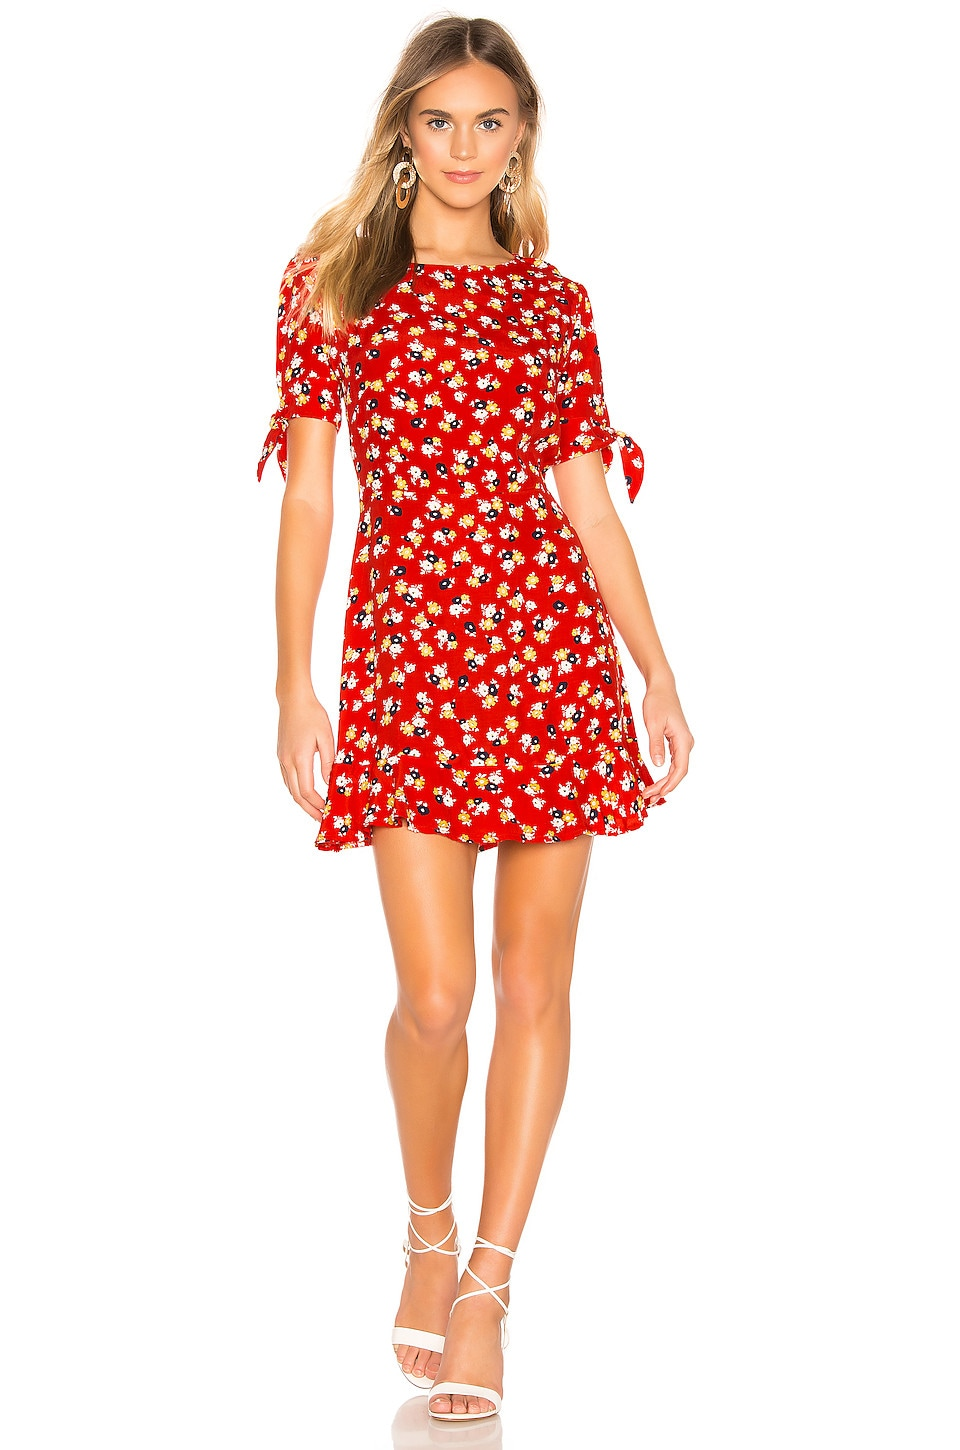 FAITHFULL THE BRAND VESTIDO DAPHNE